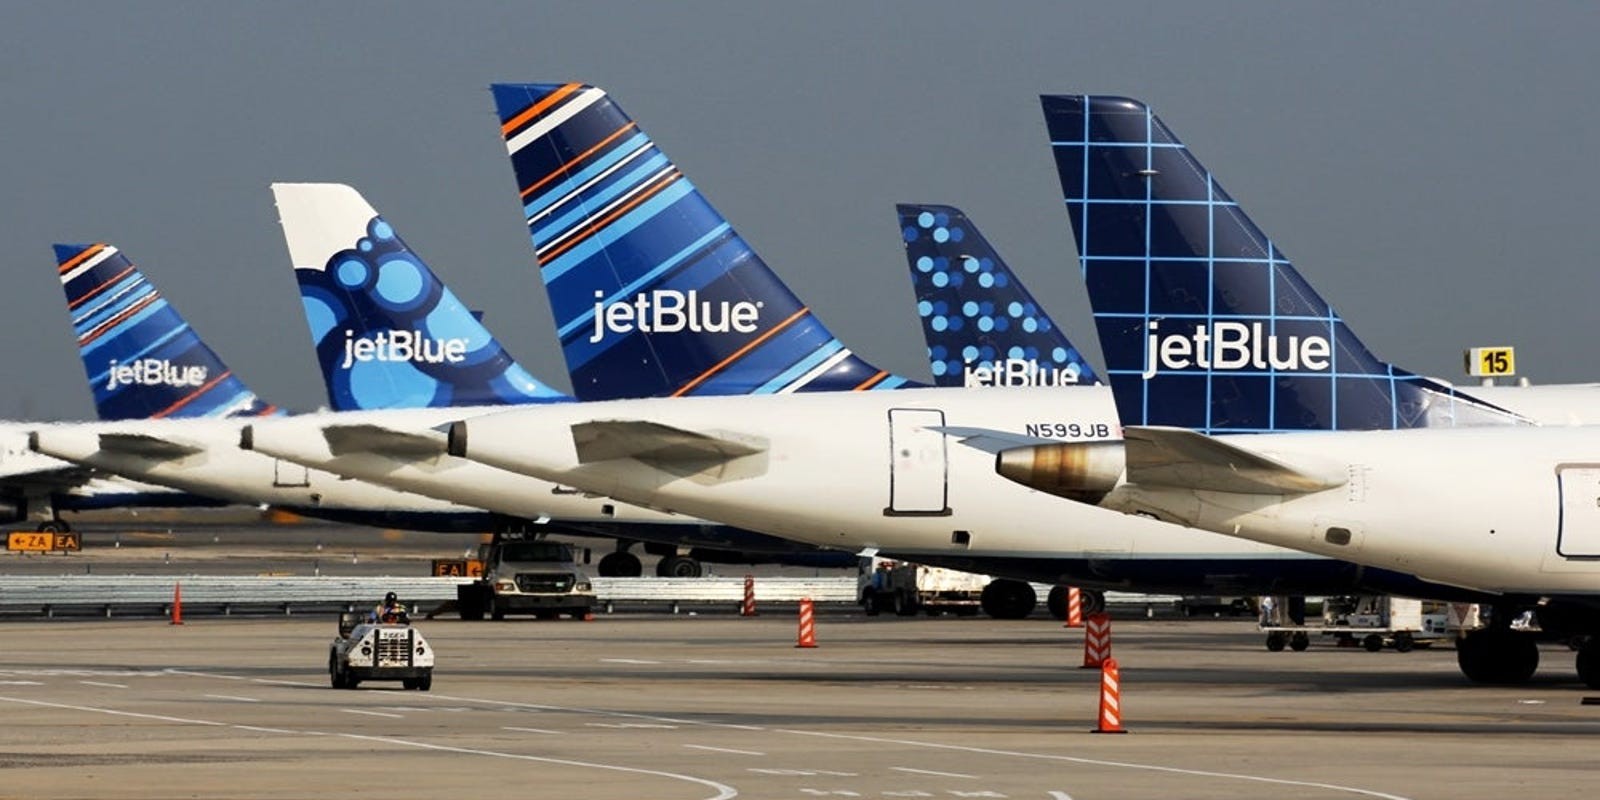 JetBlue's cheapest tickets are getting cheaper but will come with a major catch: no carry-on bag allowed - USA TODAY